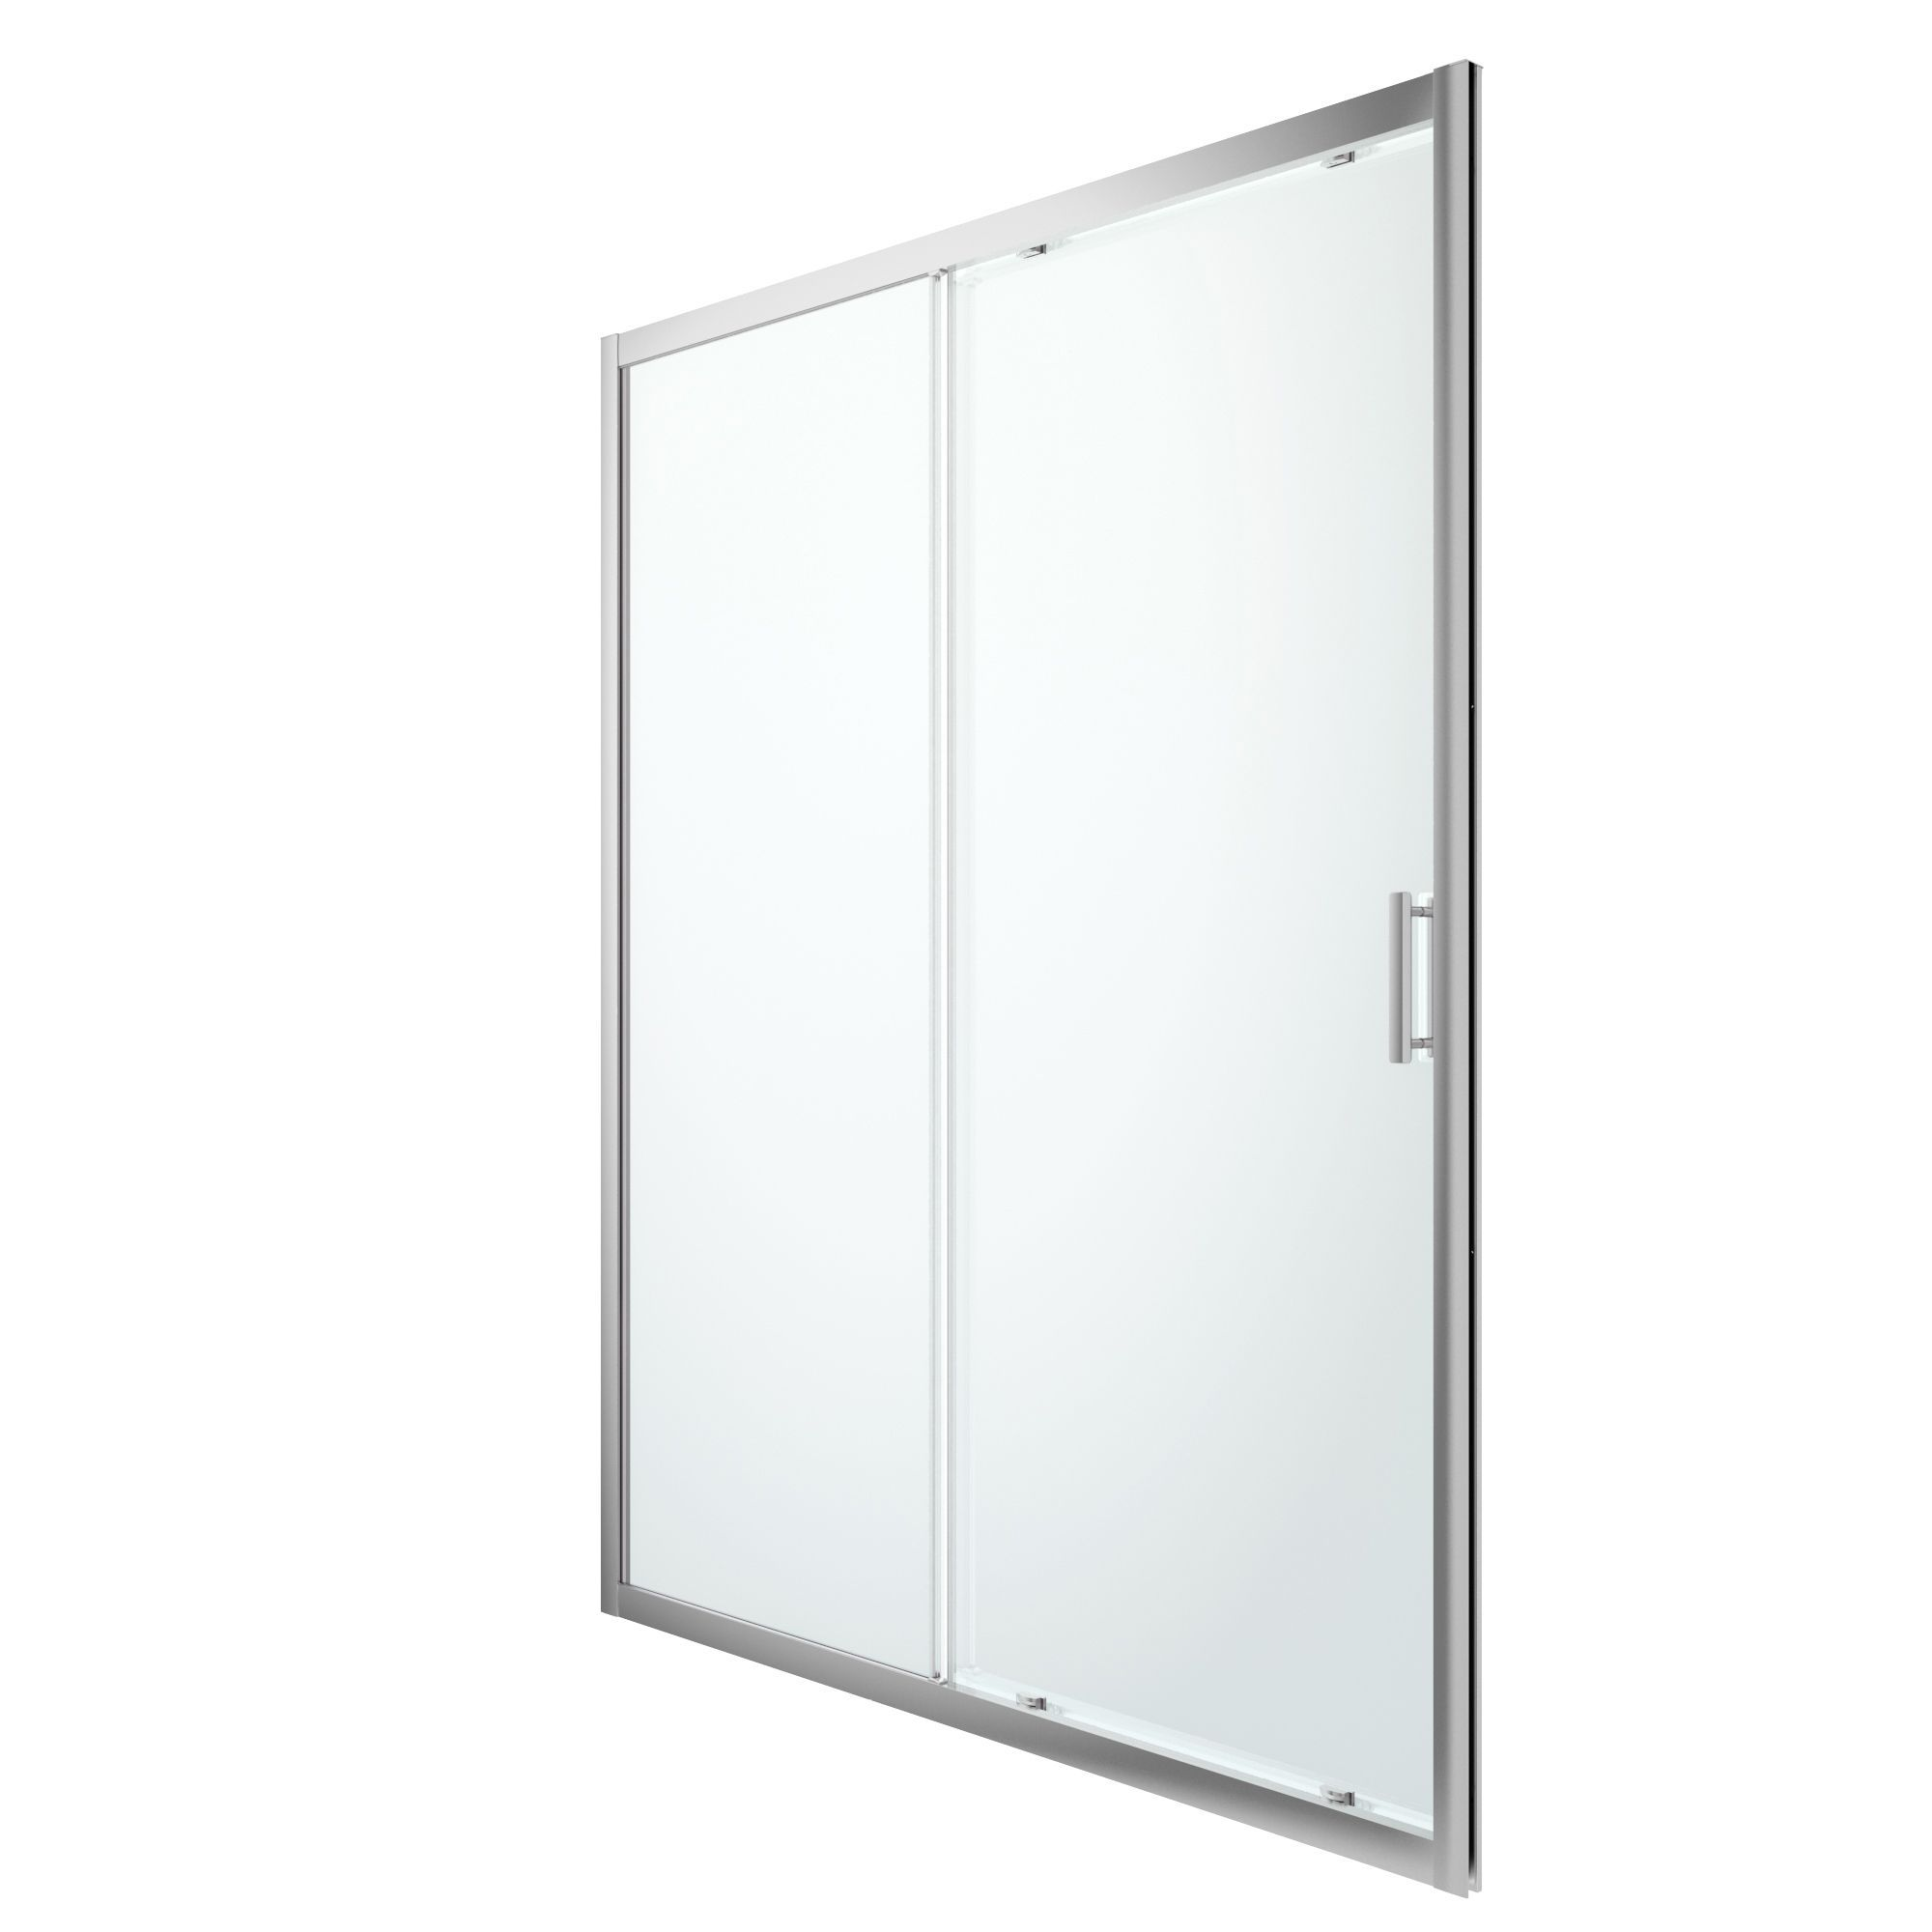 Cooke & Lewis Beloya Shower Door With 2 Panel Sliding